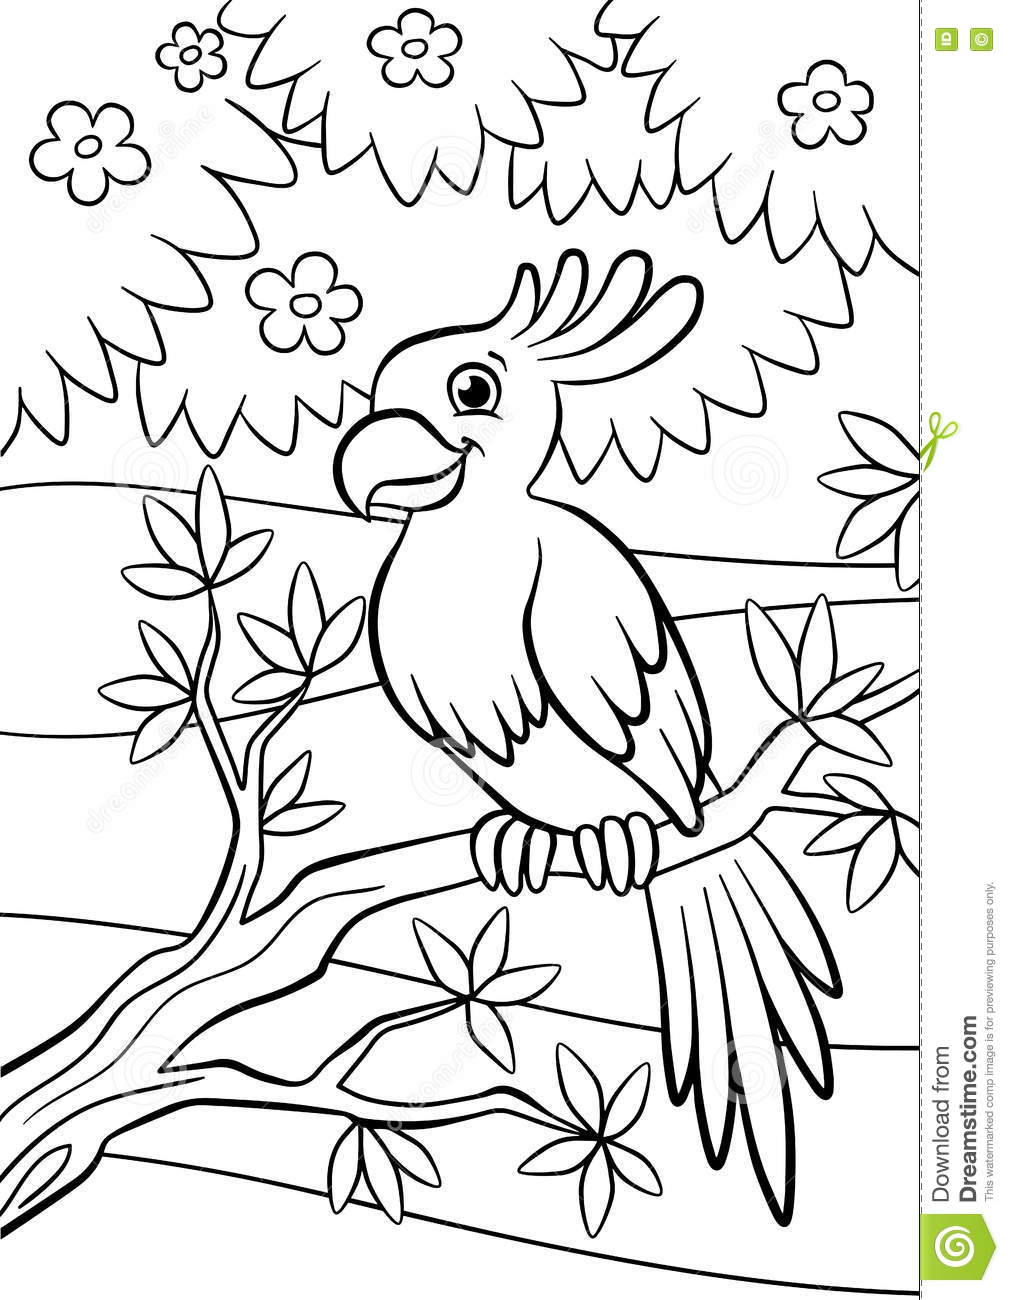 coloring pages parrot - cartoon birds for kids little cute parrot vector